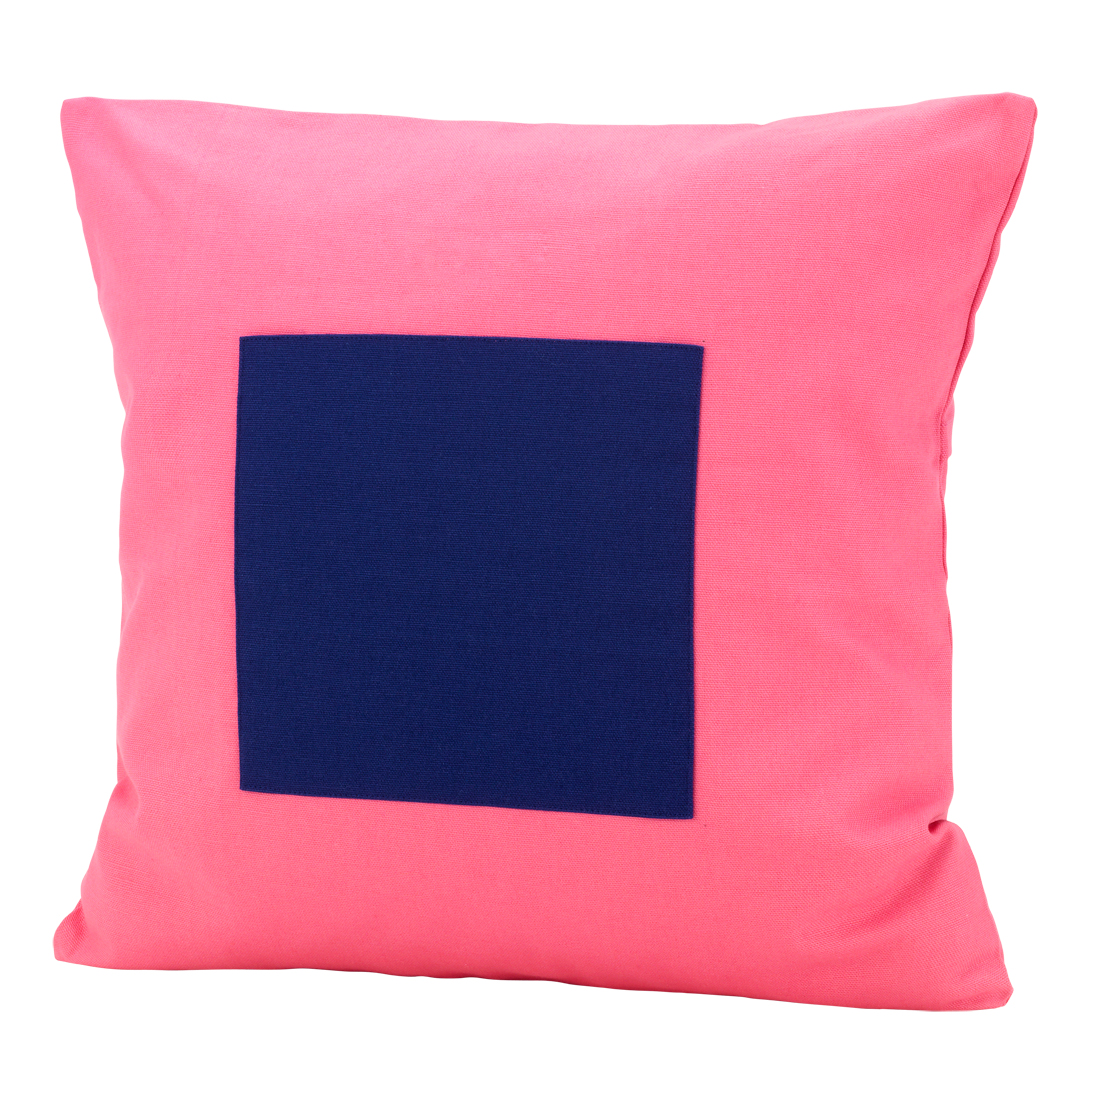 Monogrammed Throw Pillow Covers : Throw Pillow Monogrammed Pillow Covers Embroidered Monogrammed Pillow